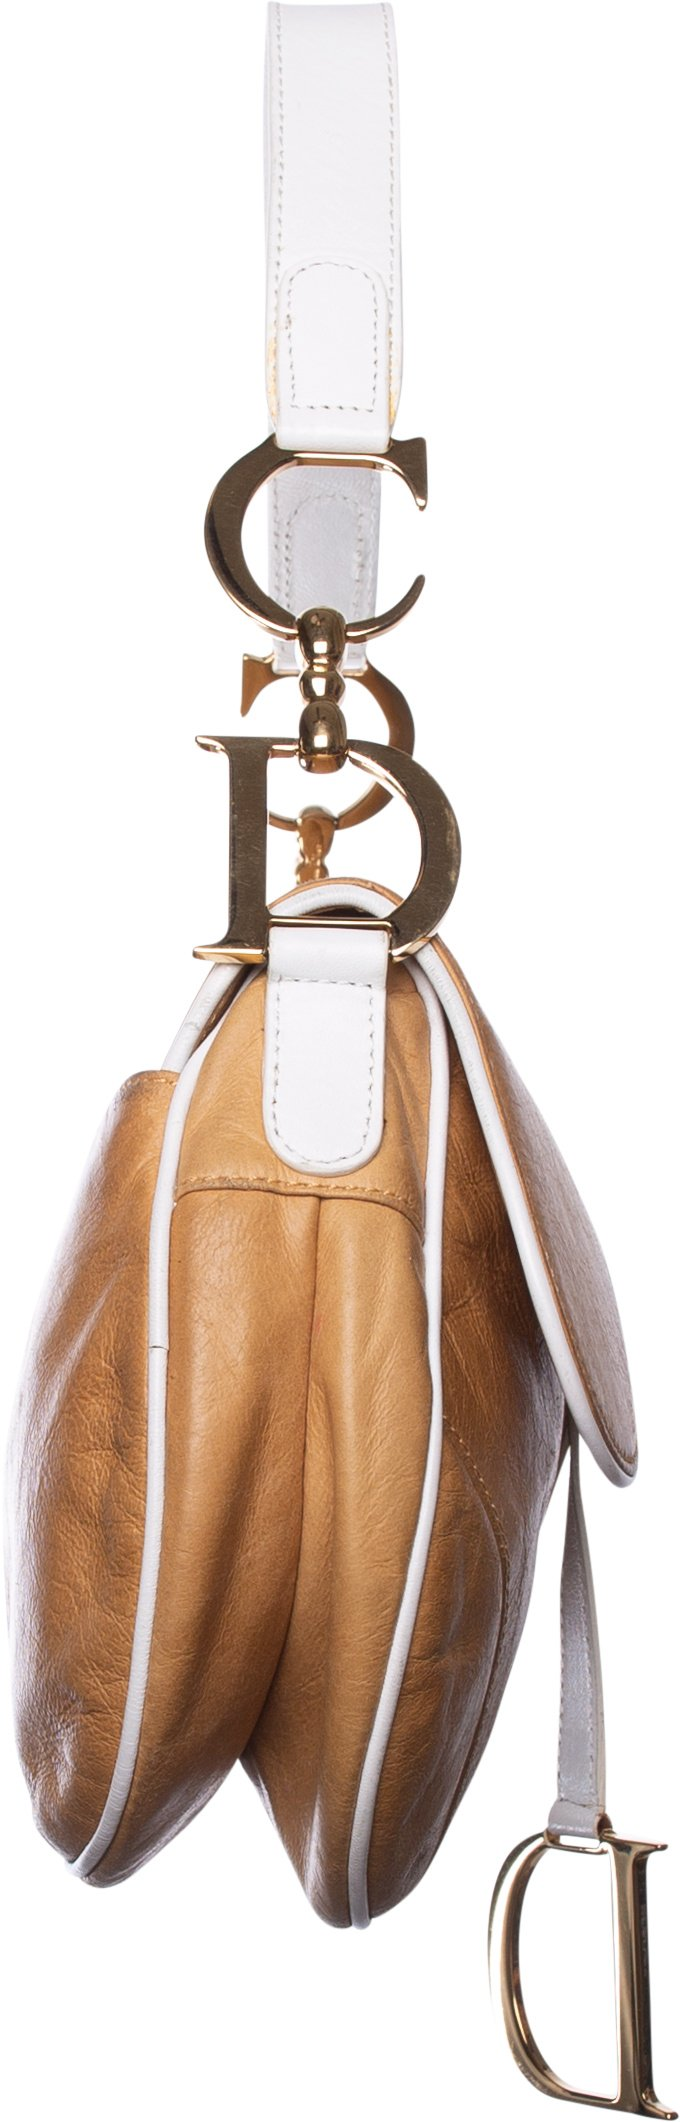 Christian Dior Spring 2000 Runway Leather Saddle Bag